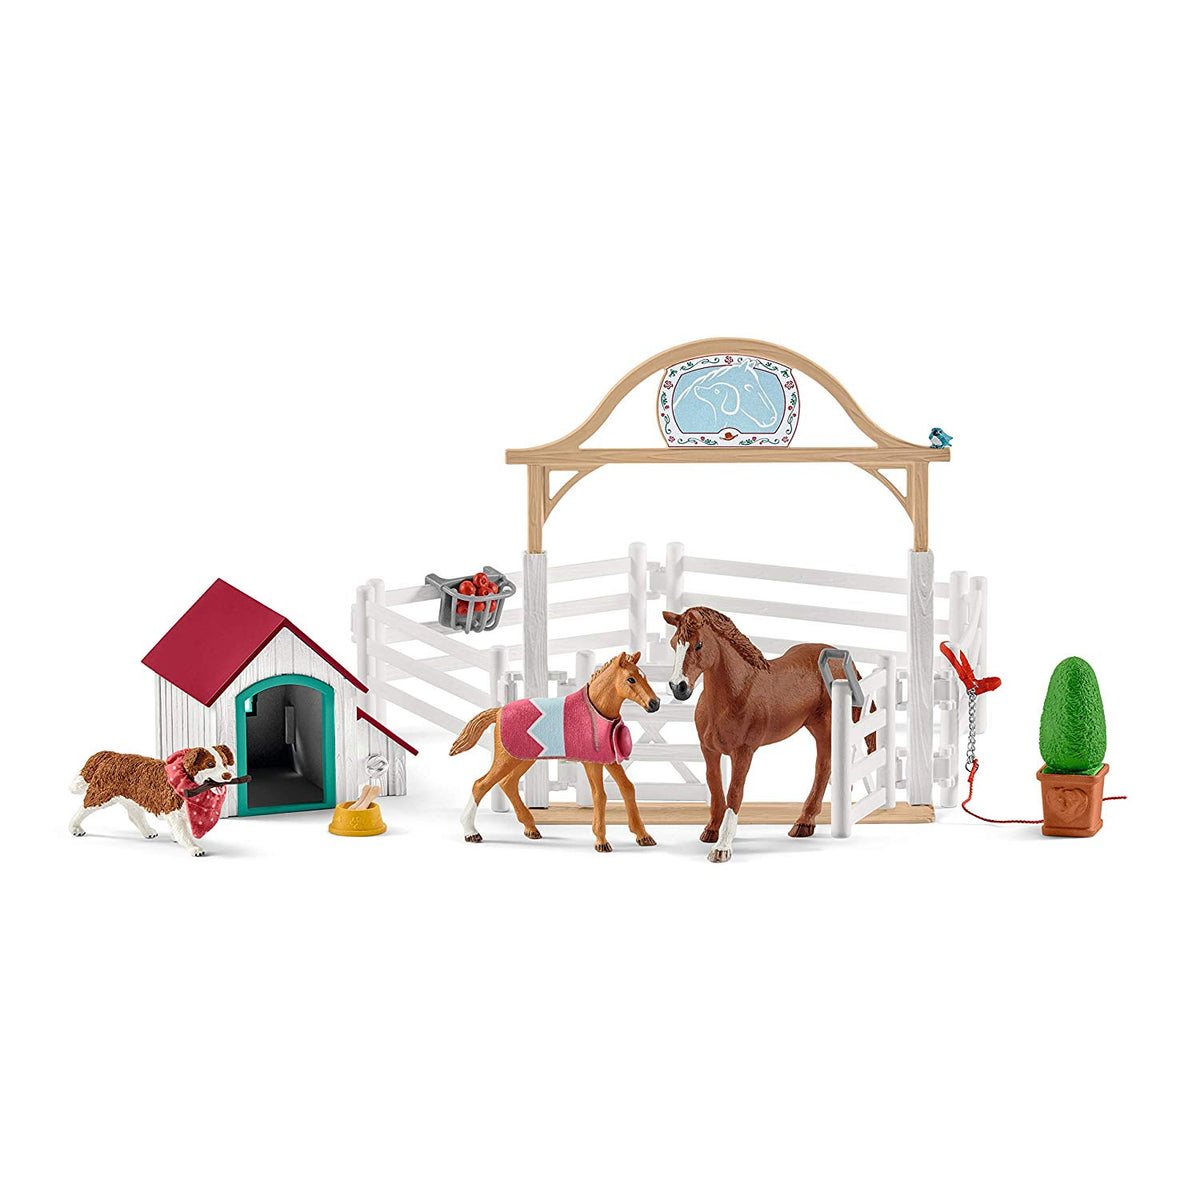 Schleich Hannah's Guest Horses with Ruby the Dog Playset 42458